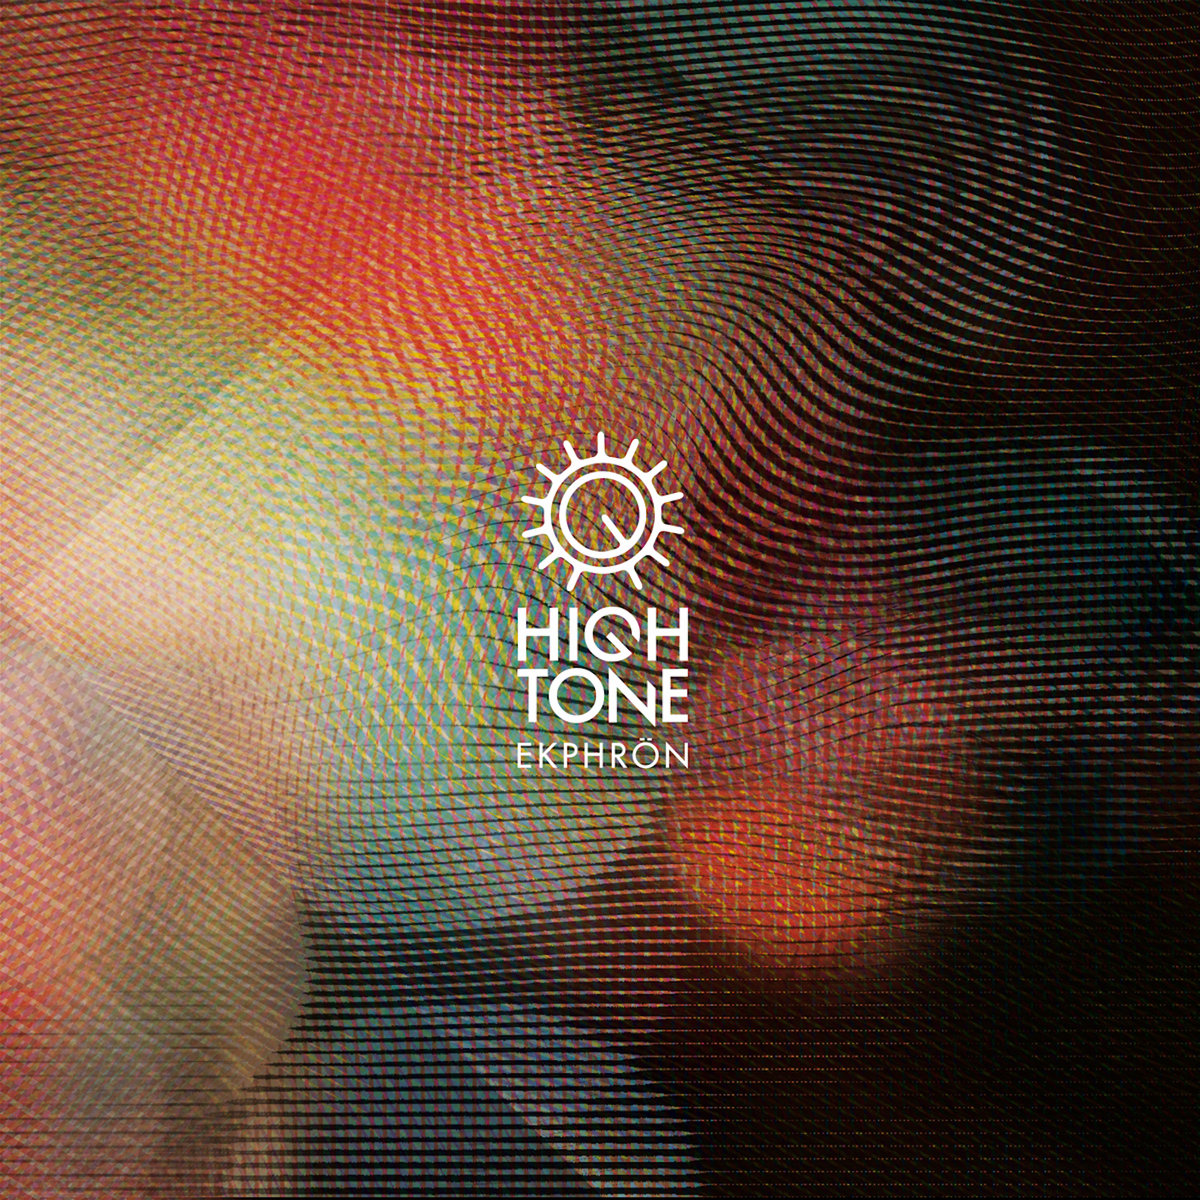 high tone ekphron